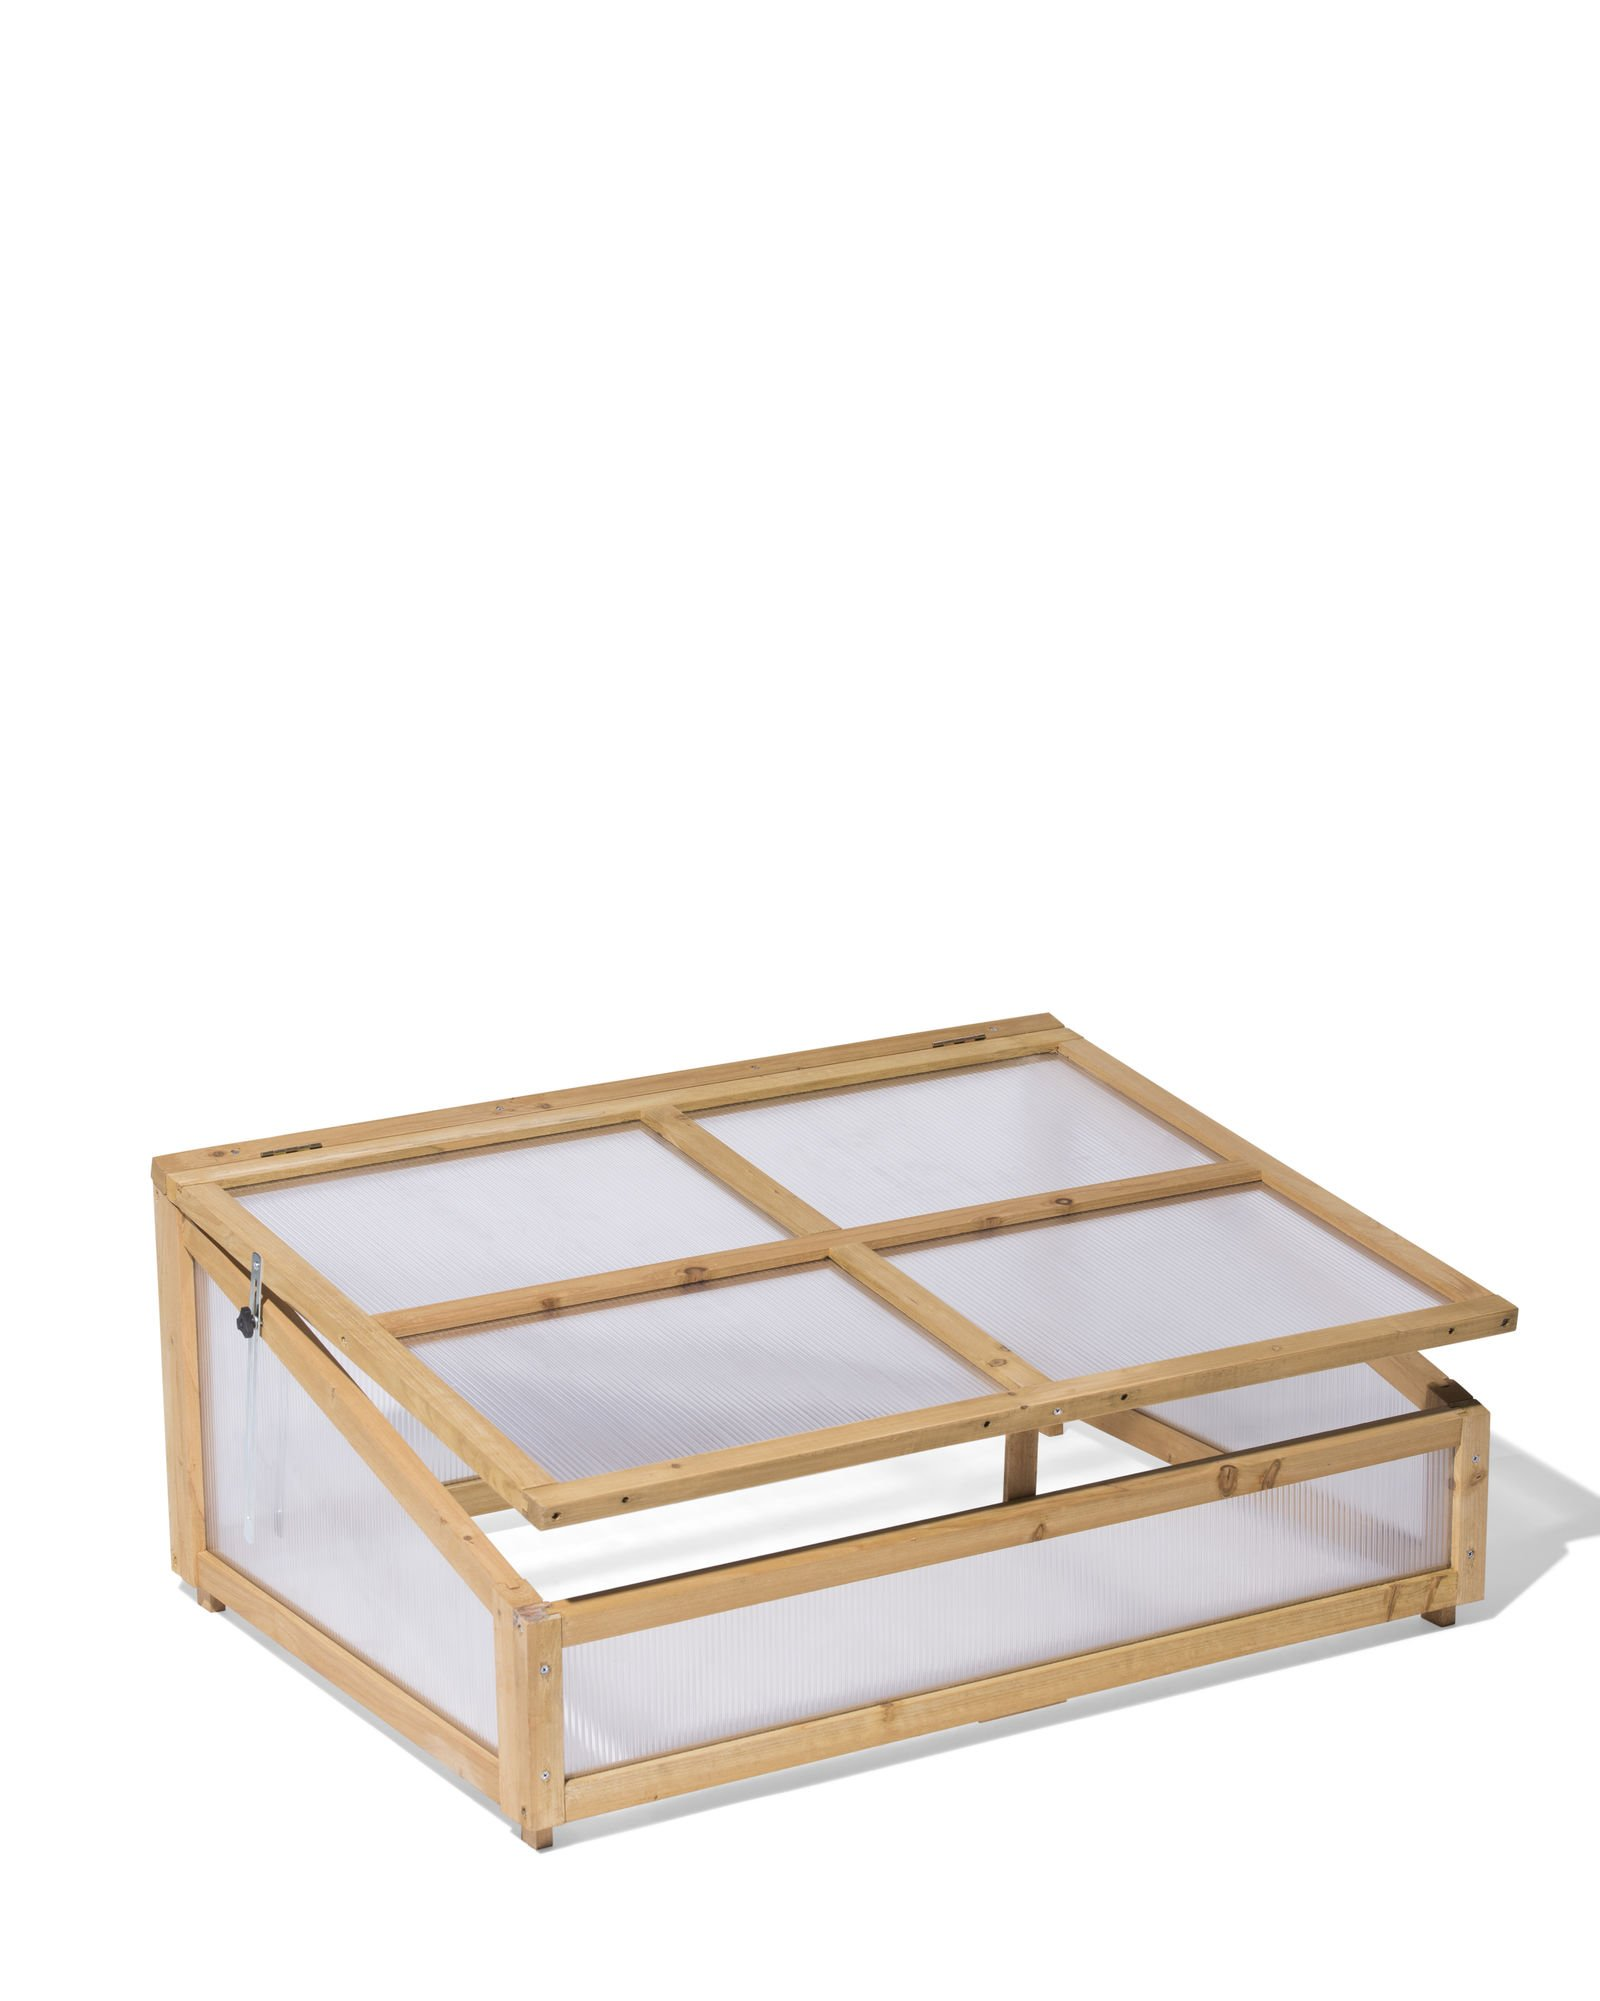 Cold Frame For Compact VegTrug8482; by Veg Trug